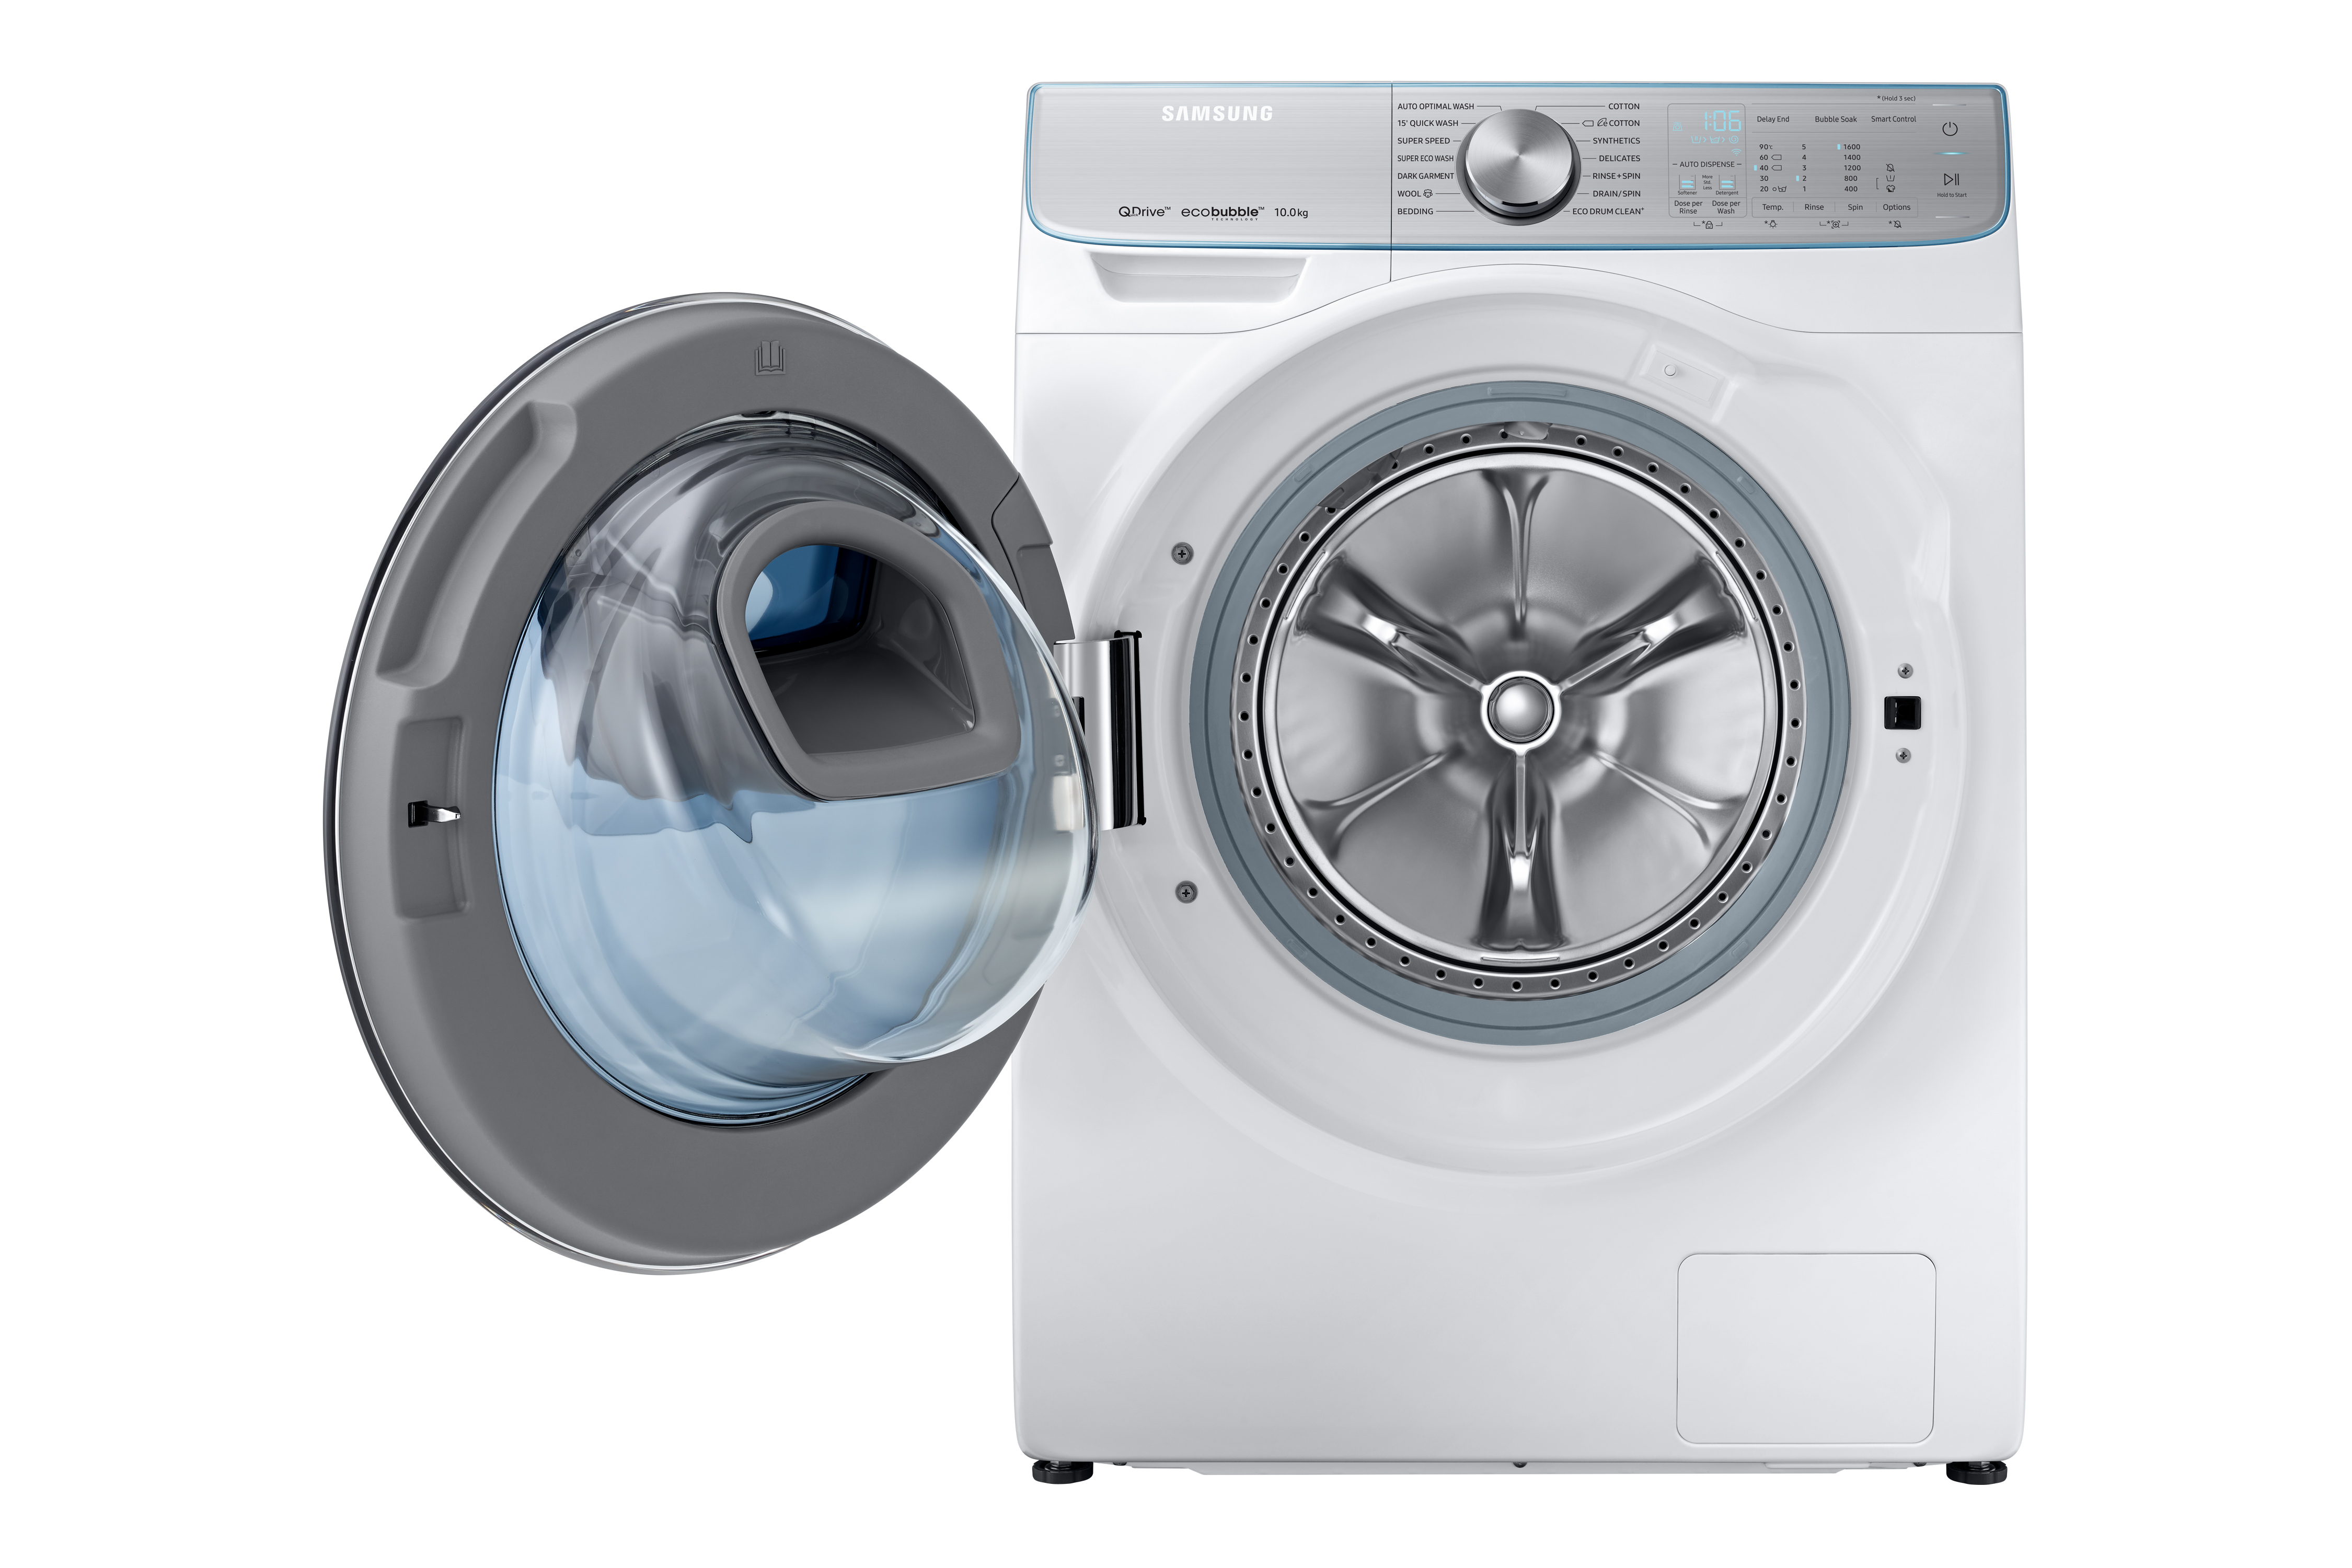 Samsung Forum 2018 Series (Part 1): Samsung washes away laundry woes